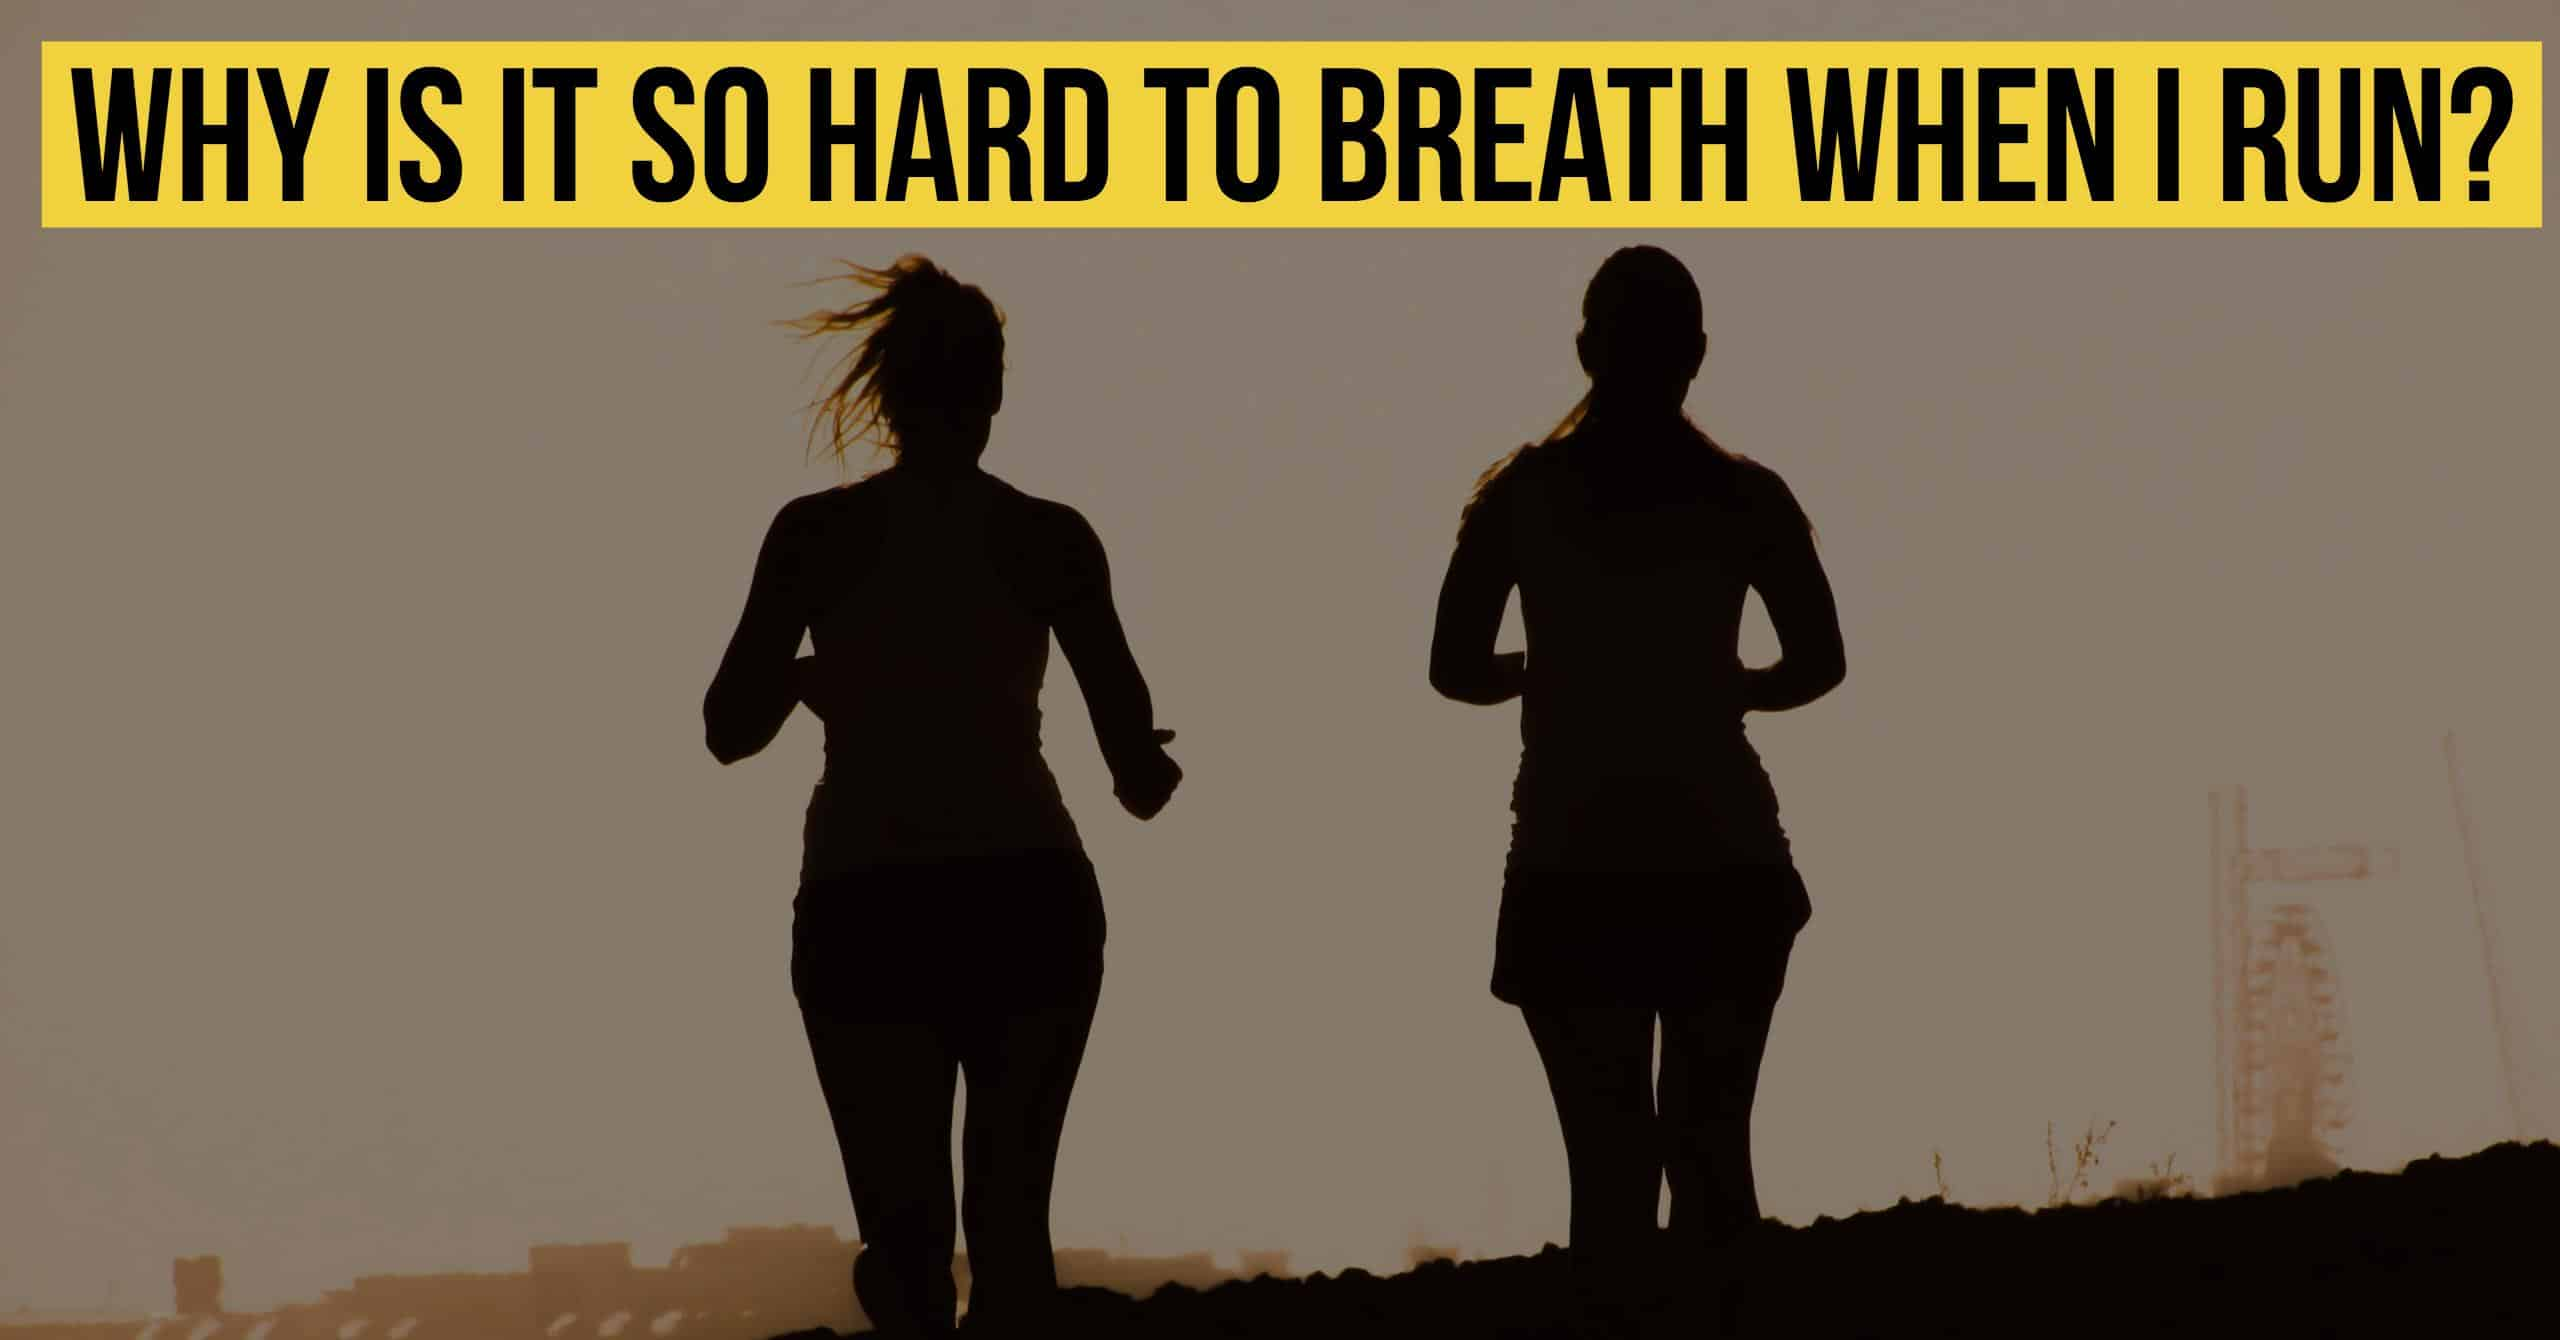 If you can't breath when you run, you are not alone. So why is it so hard to breath when I run? Here are 4 tips for better breathing.